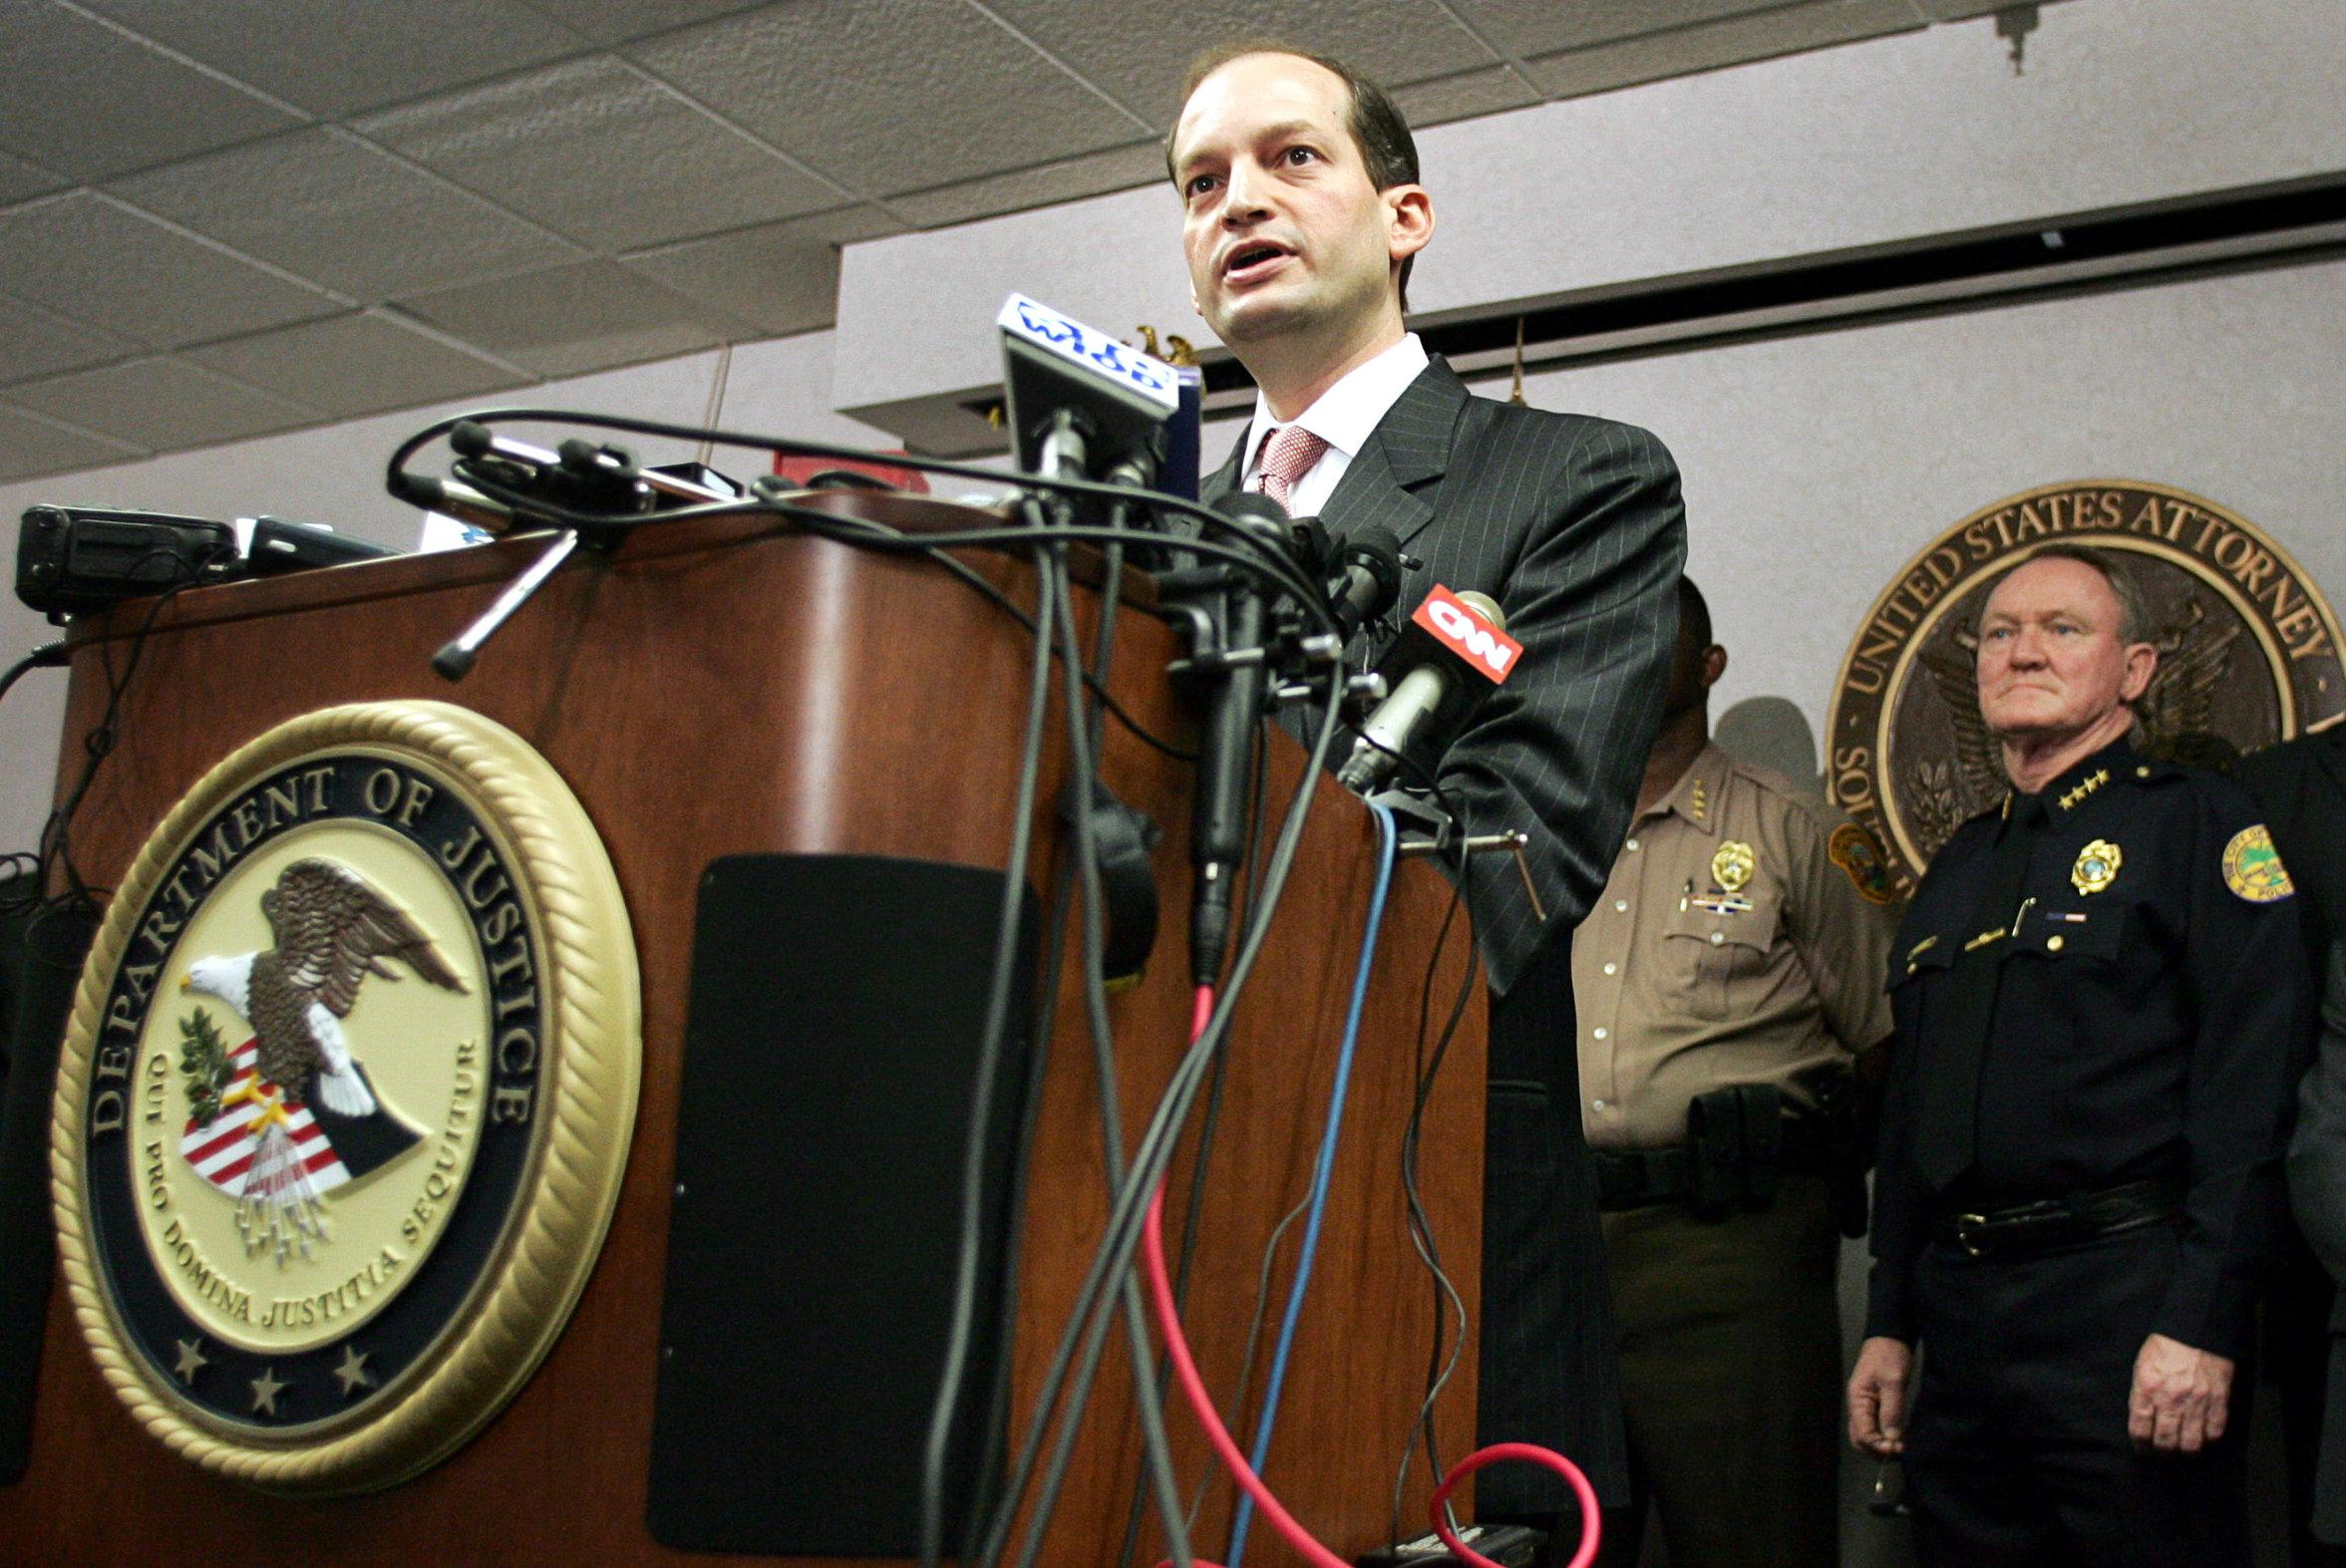 File Photo: U.S. Attorney R. Alexander Acosta (L) and other law enforcement officials hold a news conference in Miami, Florida, June 23, 2006.REUTERS/Marc Serota/File Photo